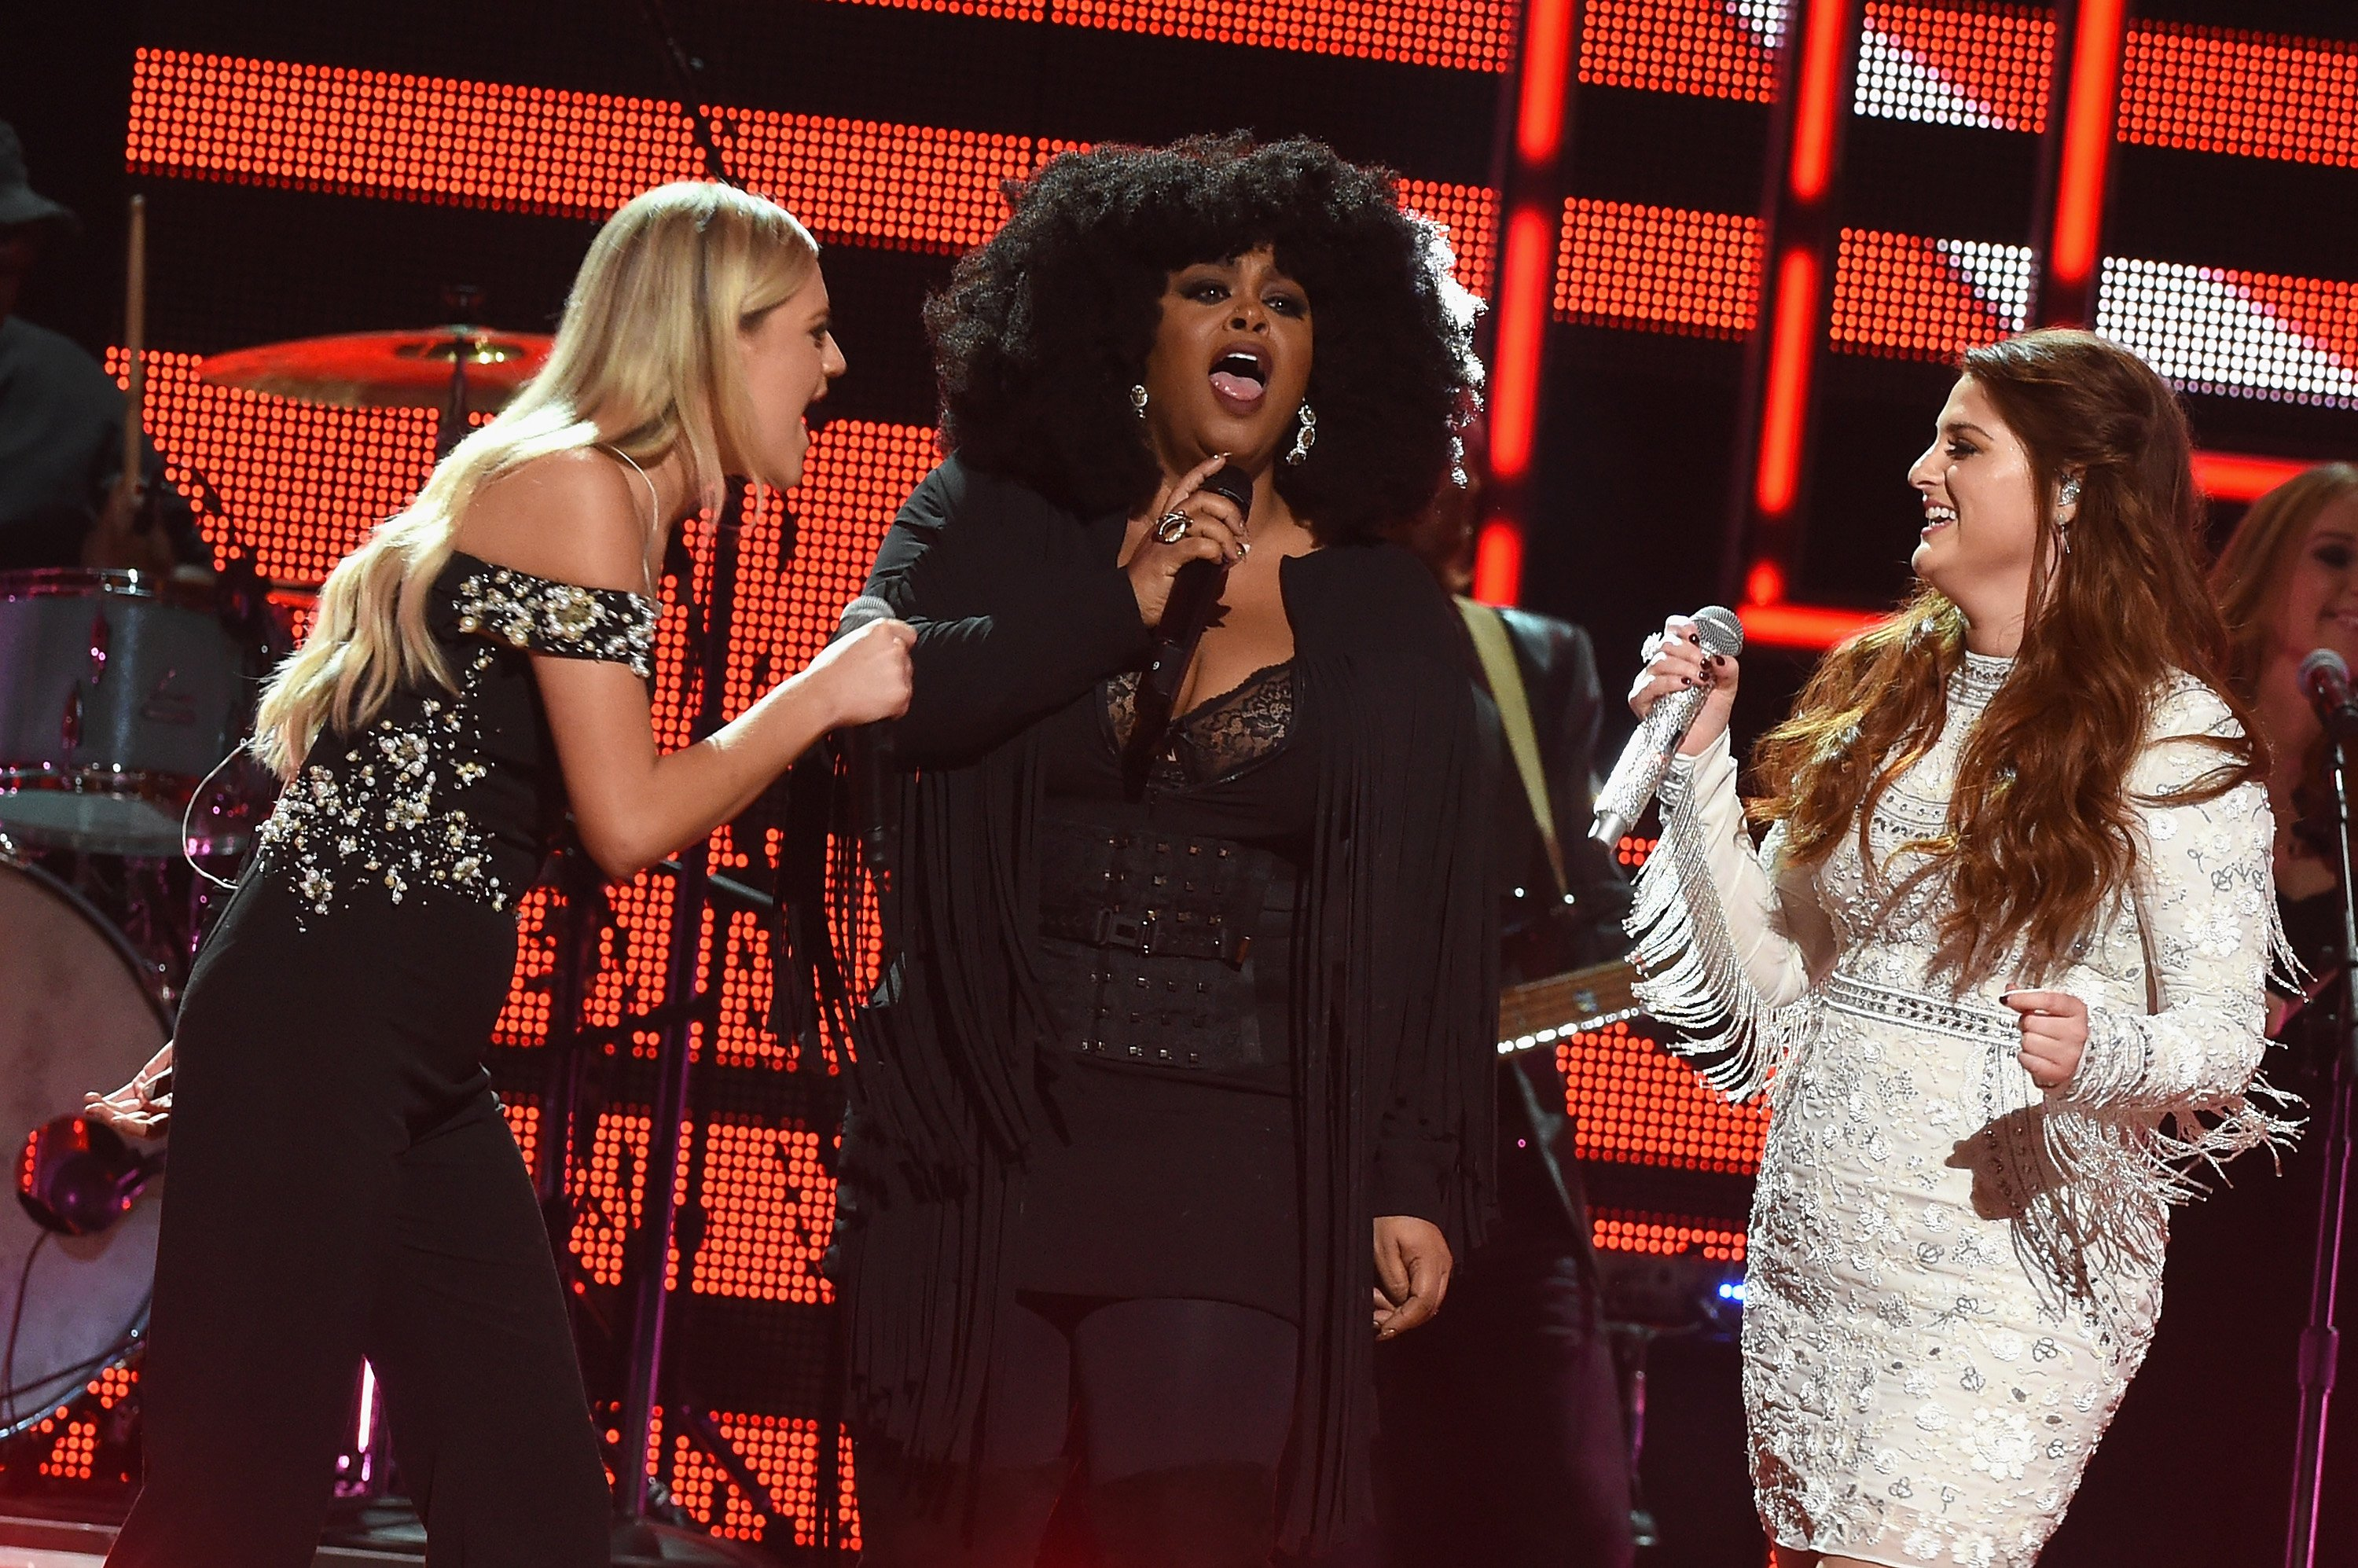 Kelsea Ballerini, Jill Scott and Meghan Trainor perform on stage during CMT Artists of the Year 2016 on October 19, 2016 in Nashville